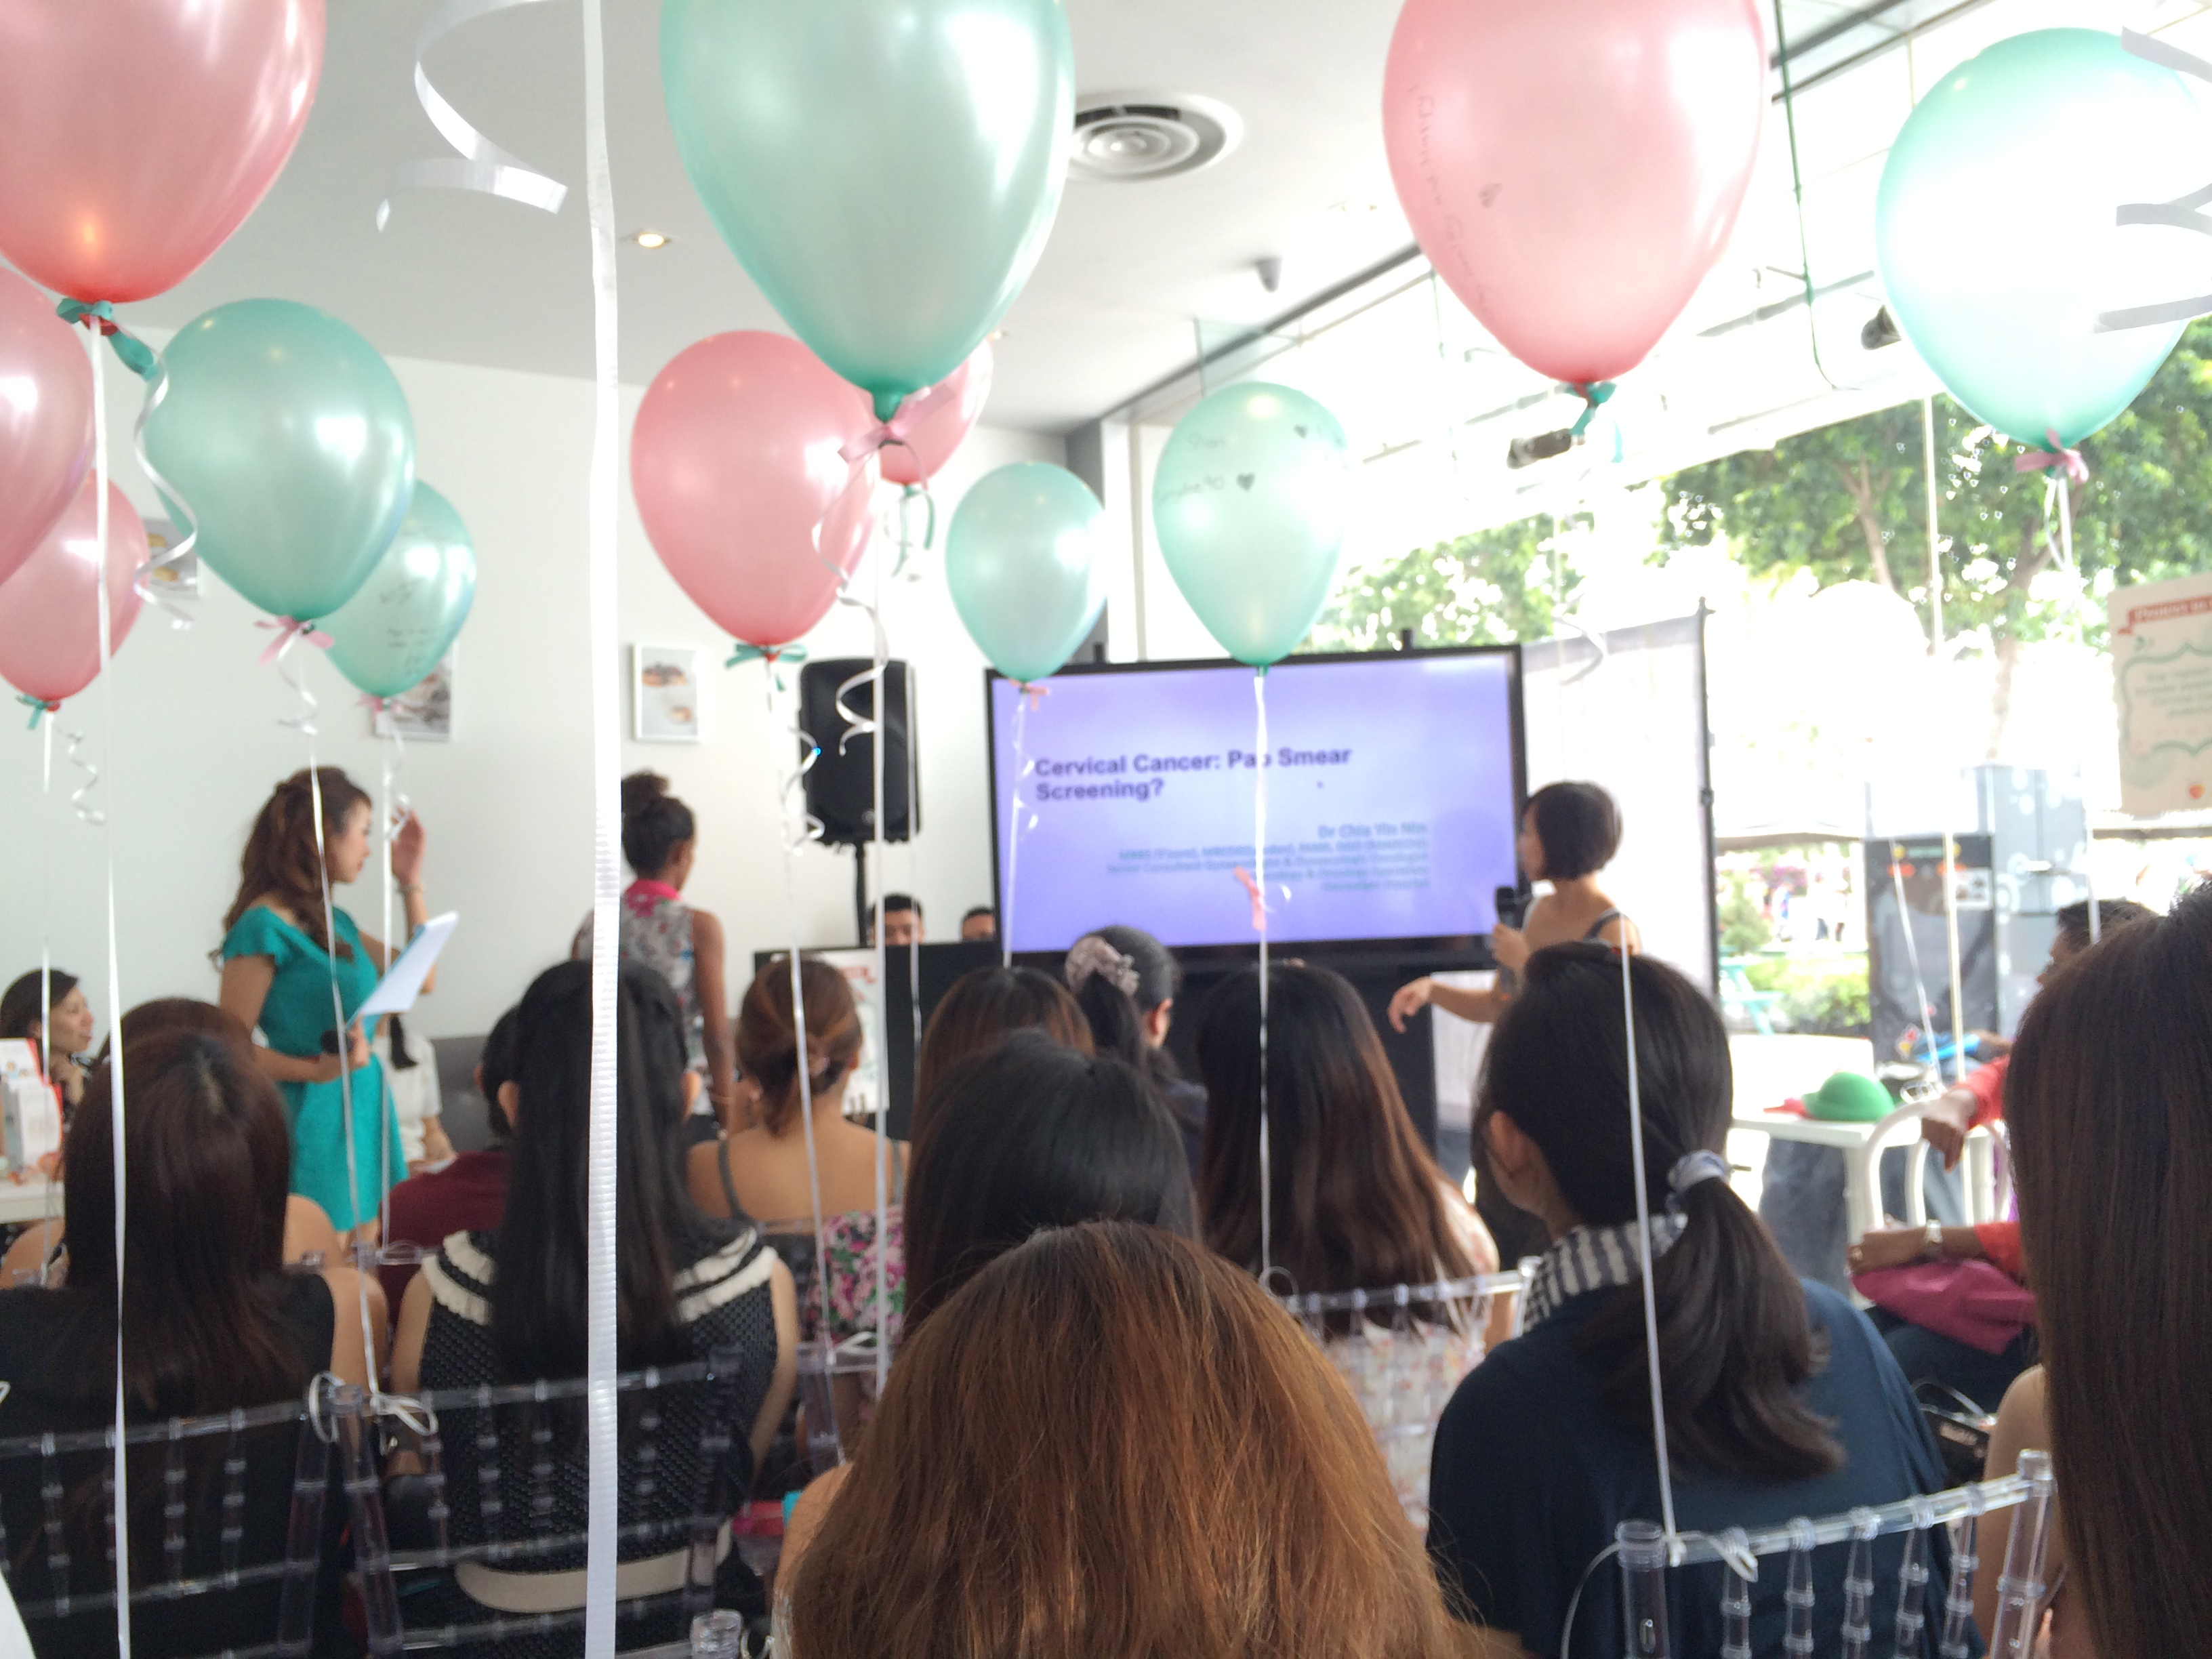 Busting Myths about Cervical Cancer & Tea @ Lady M Singapore | Ena